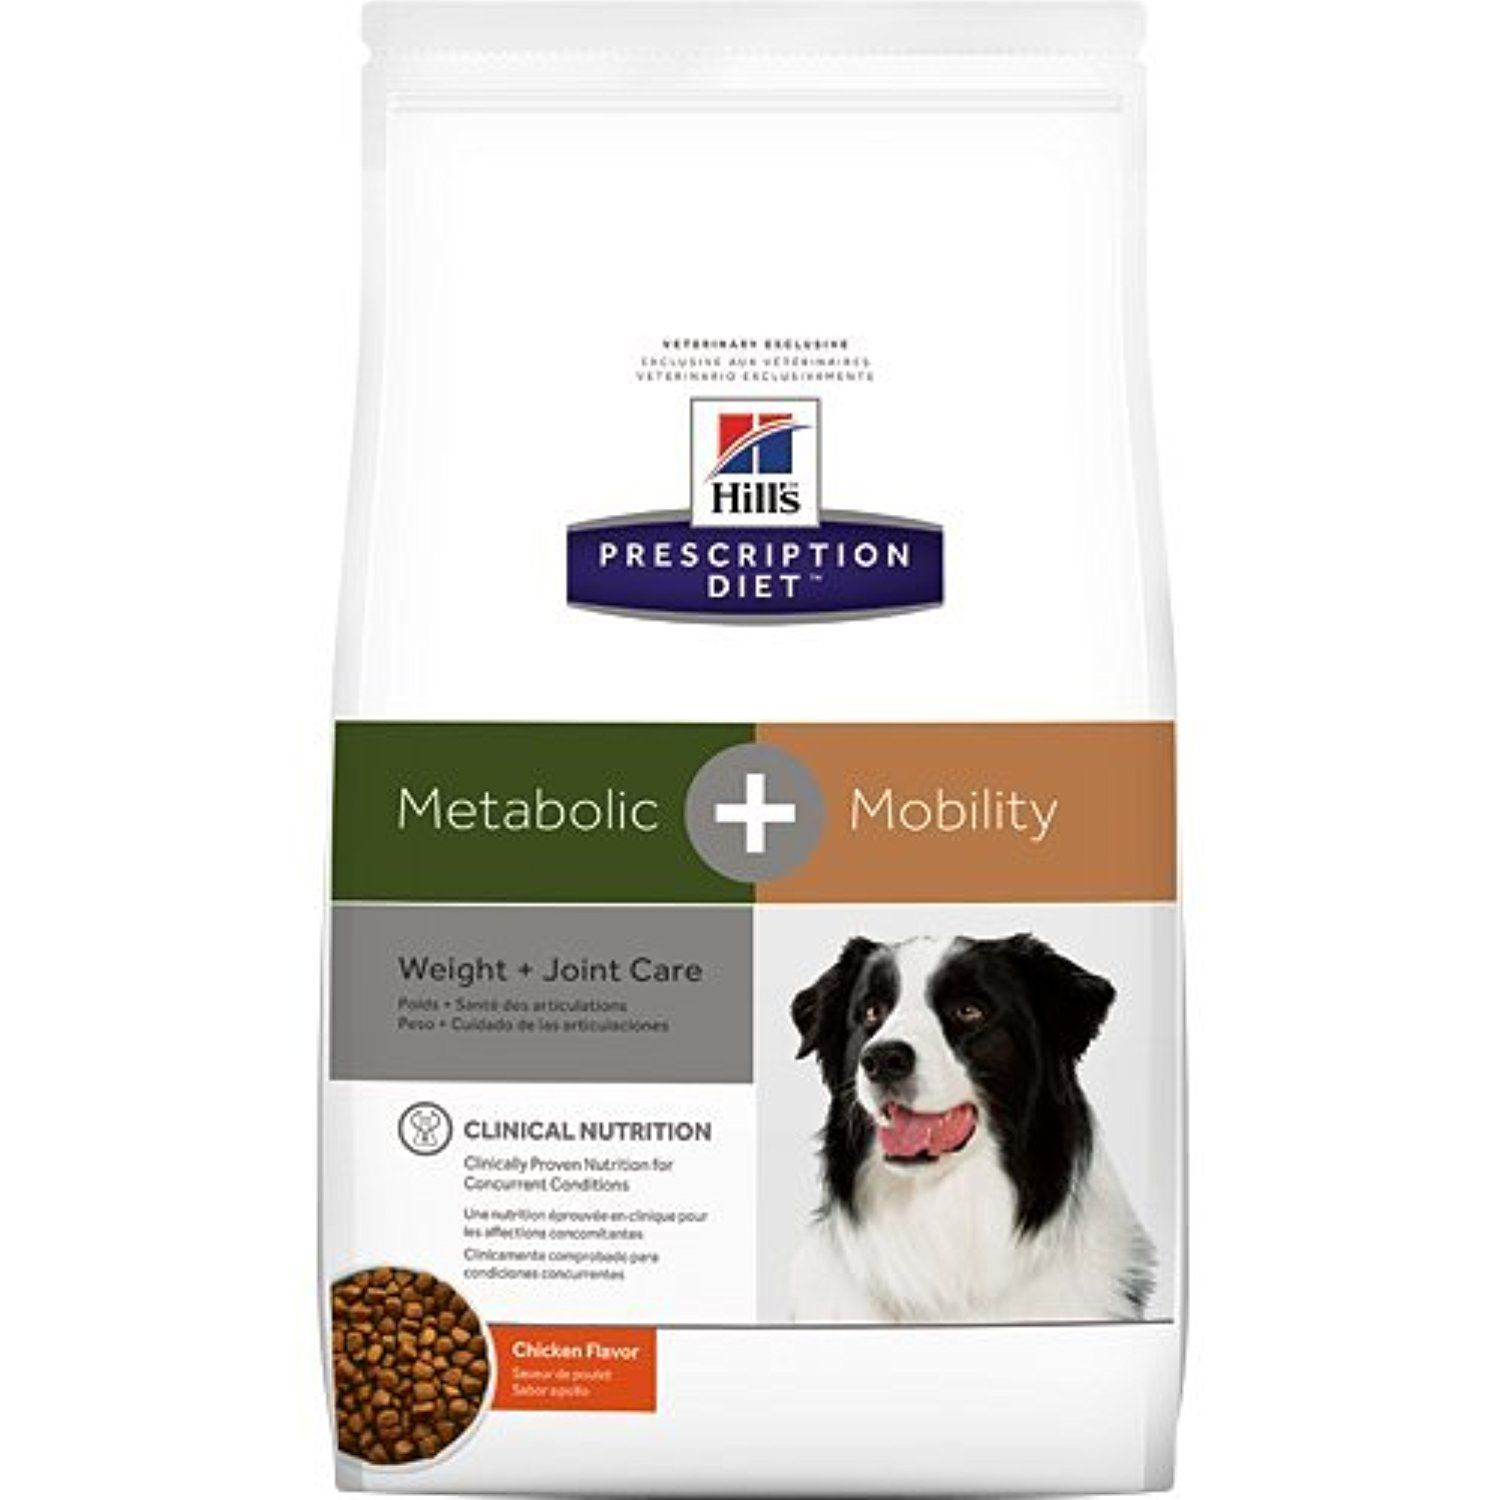 Hill's Prescription Diet Metabolic Canine Dry Dog Food 6